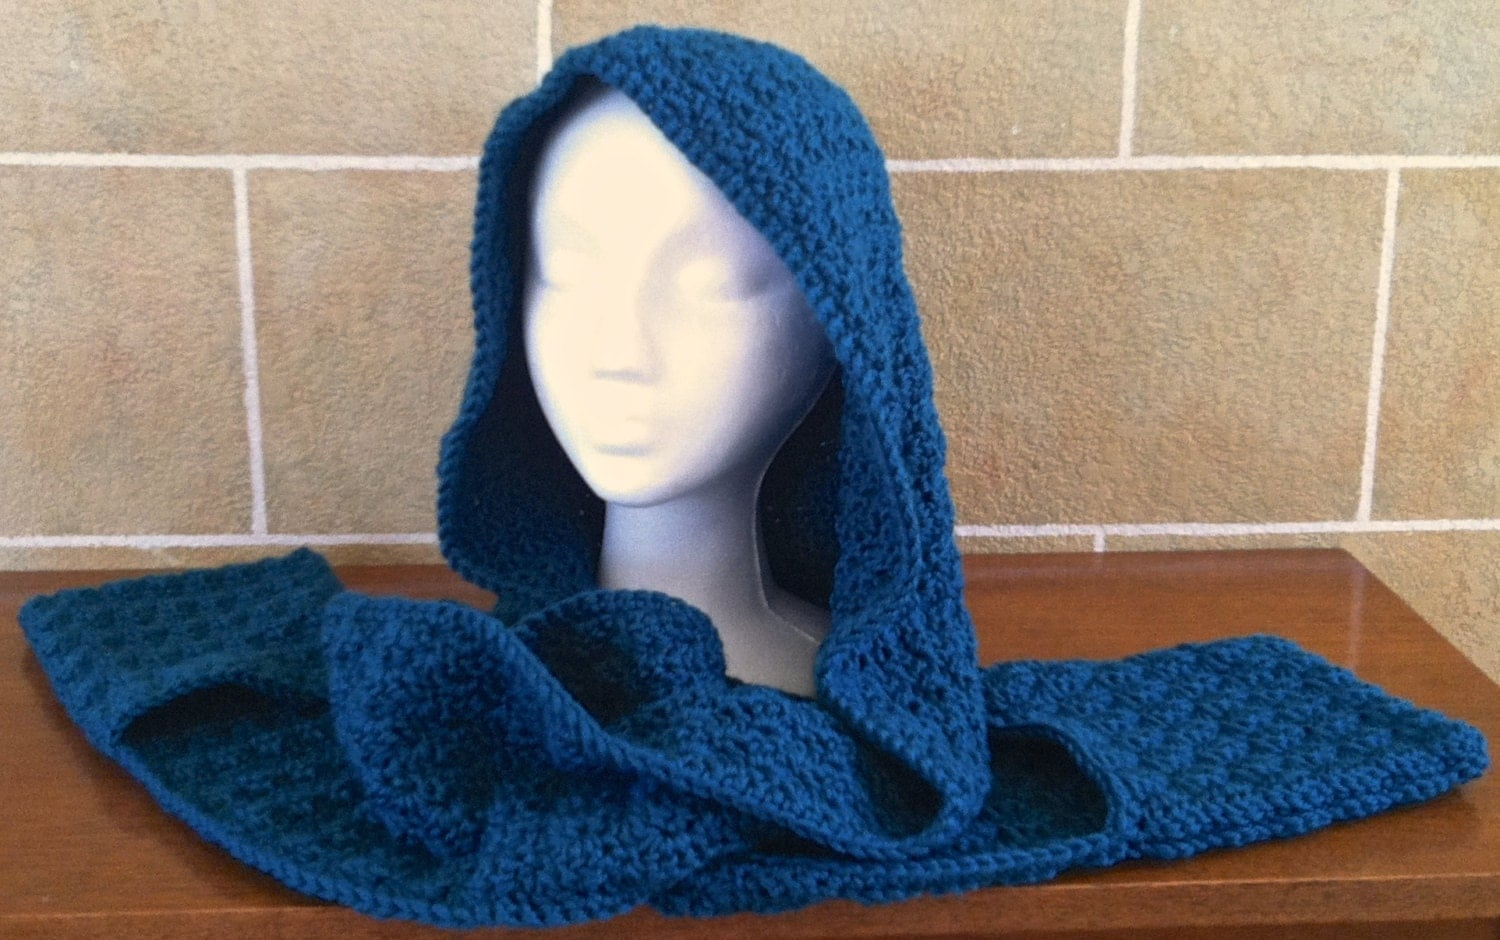 Knitting Pattern For Scarf With Hood And Pockets : hooded scarf: NEW 335 HOW TO CROCHET A HOODED SCARF WITH POCKETS